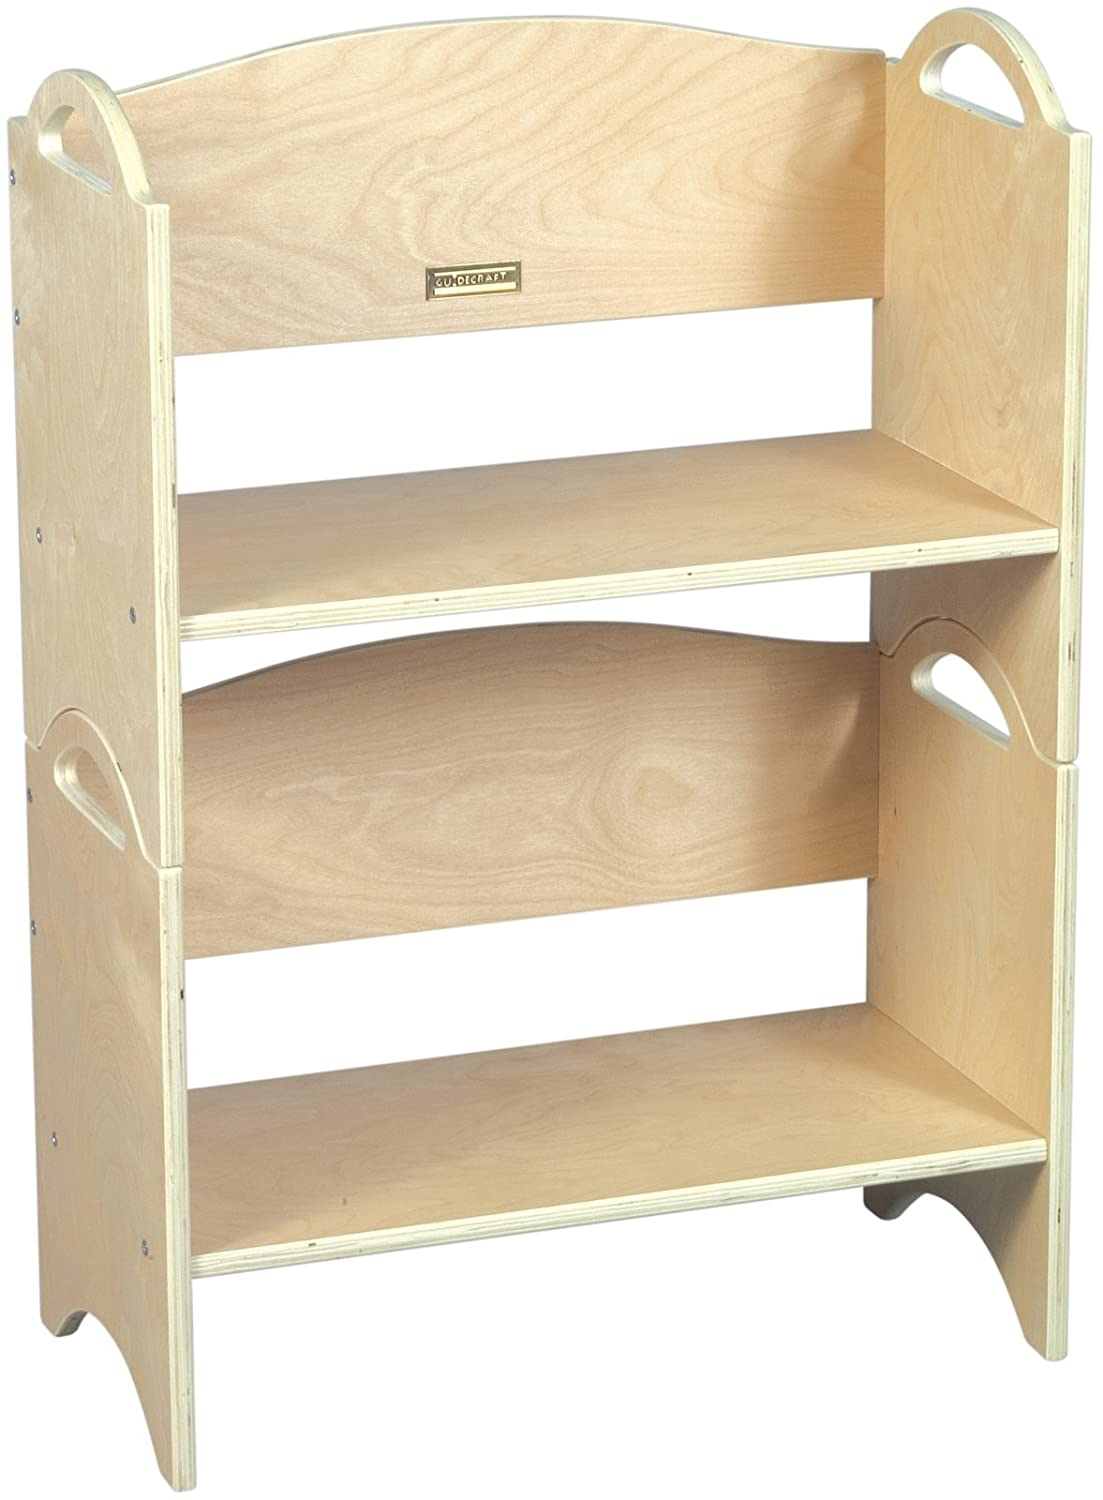 Guidecraft Stacking Bookshelf GDCG6431 535730